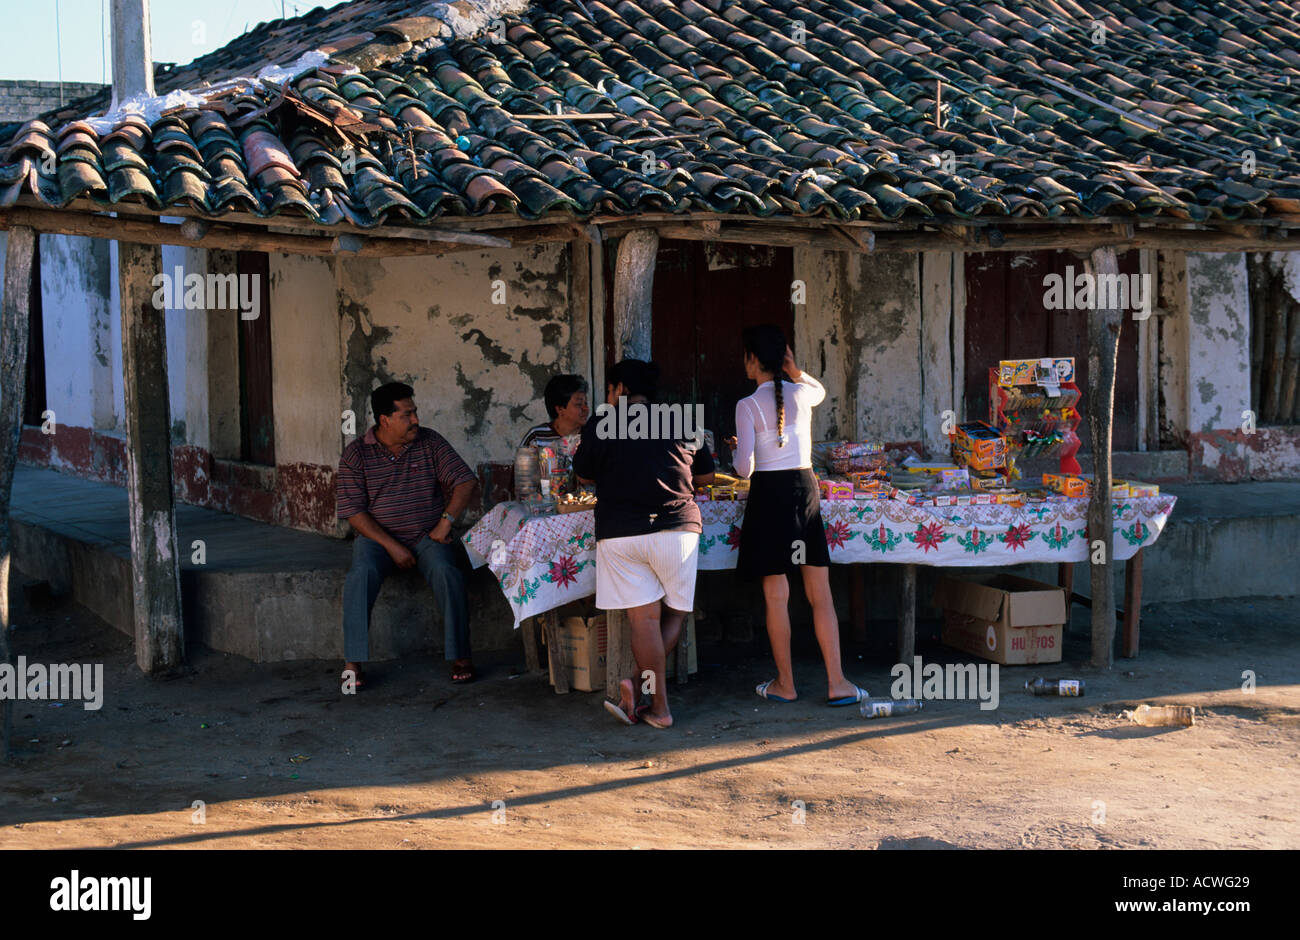 Mexico Nayarit Mexcaltitan - Stock Image